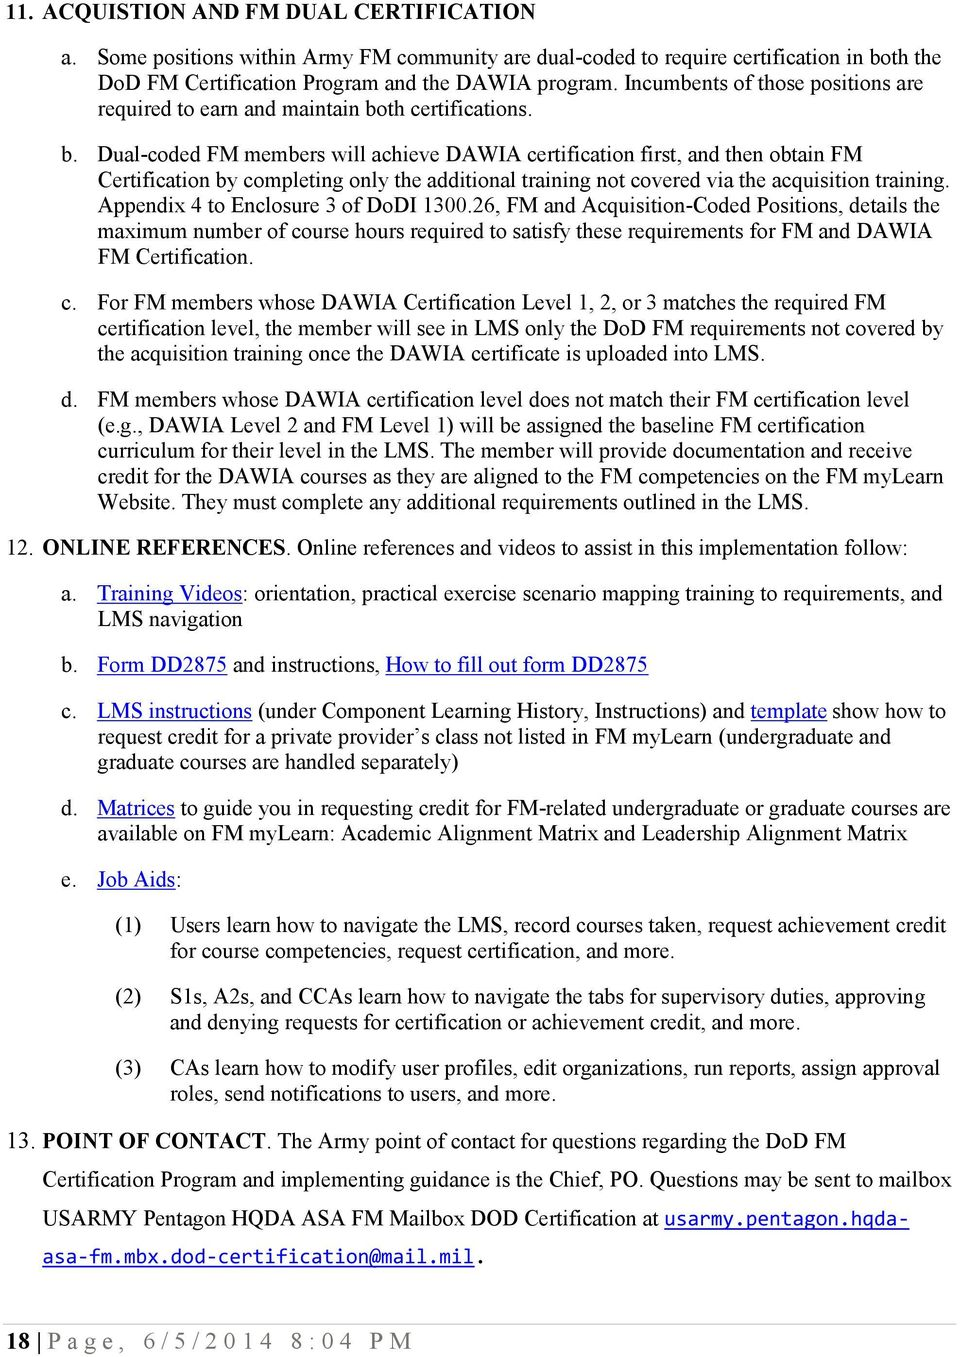 United States Army Dod Financial Management Certification Program